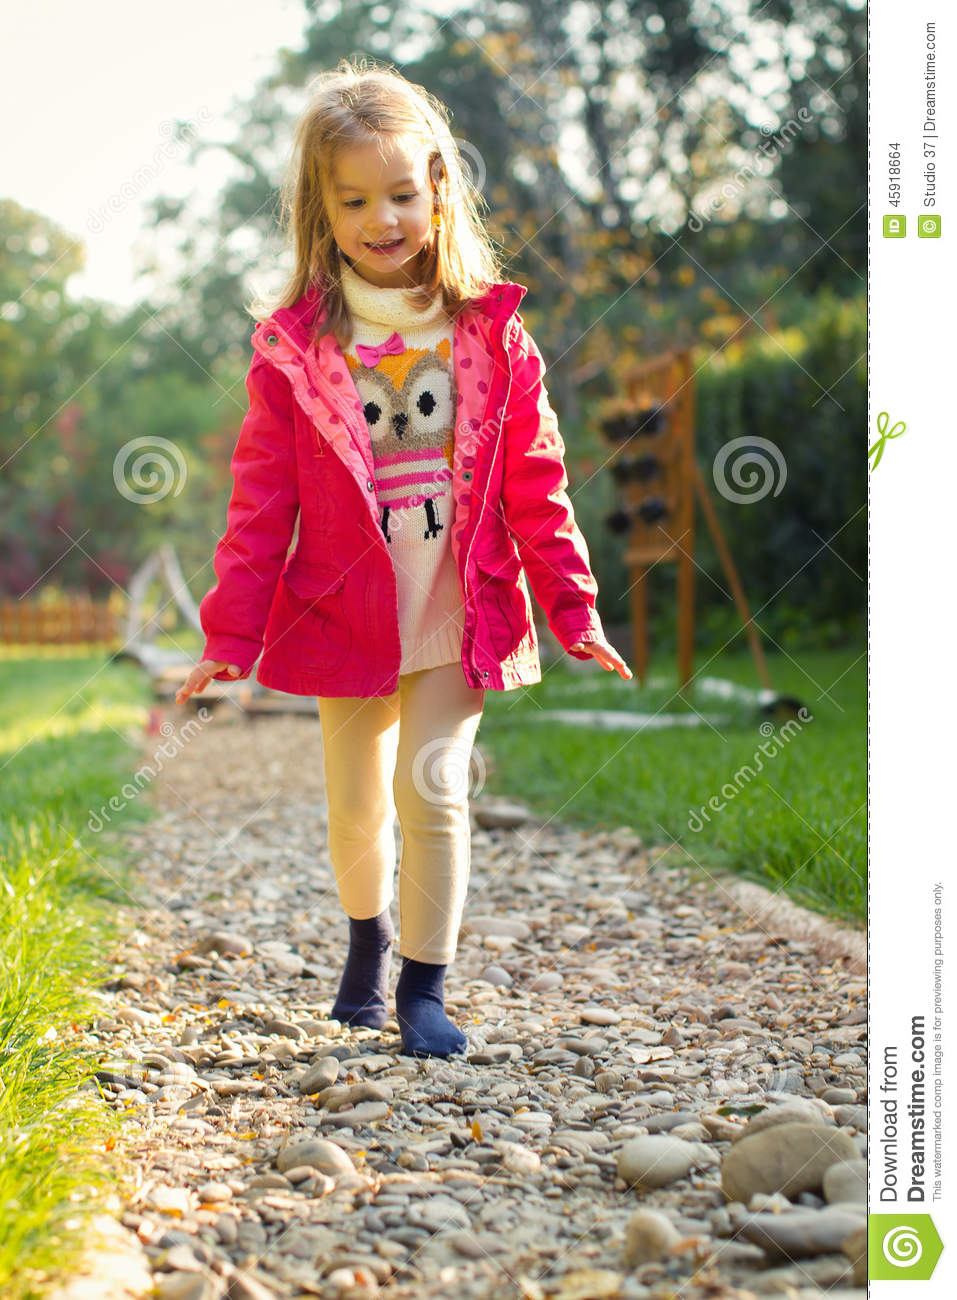 Four Year Two Year Community: 4 Year Old Girl Walking Over Pebbles Stock Photo